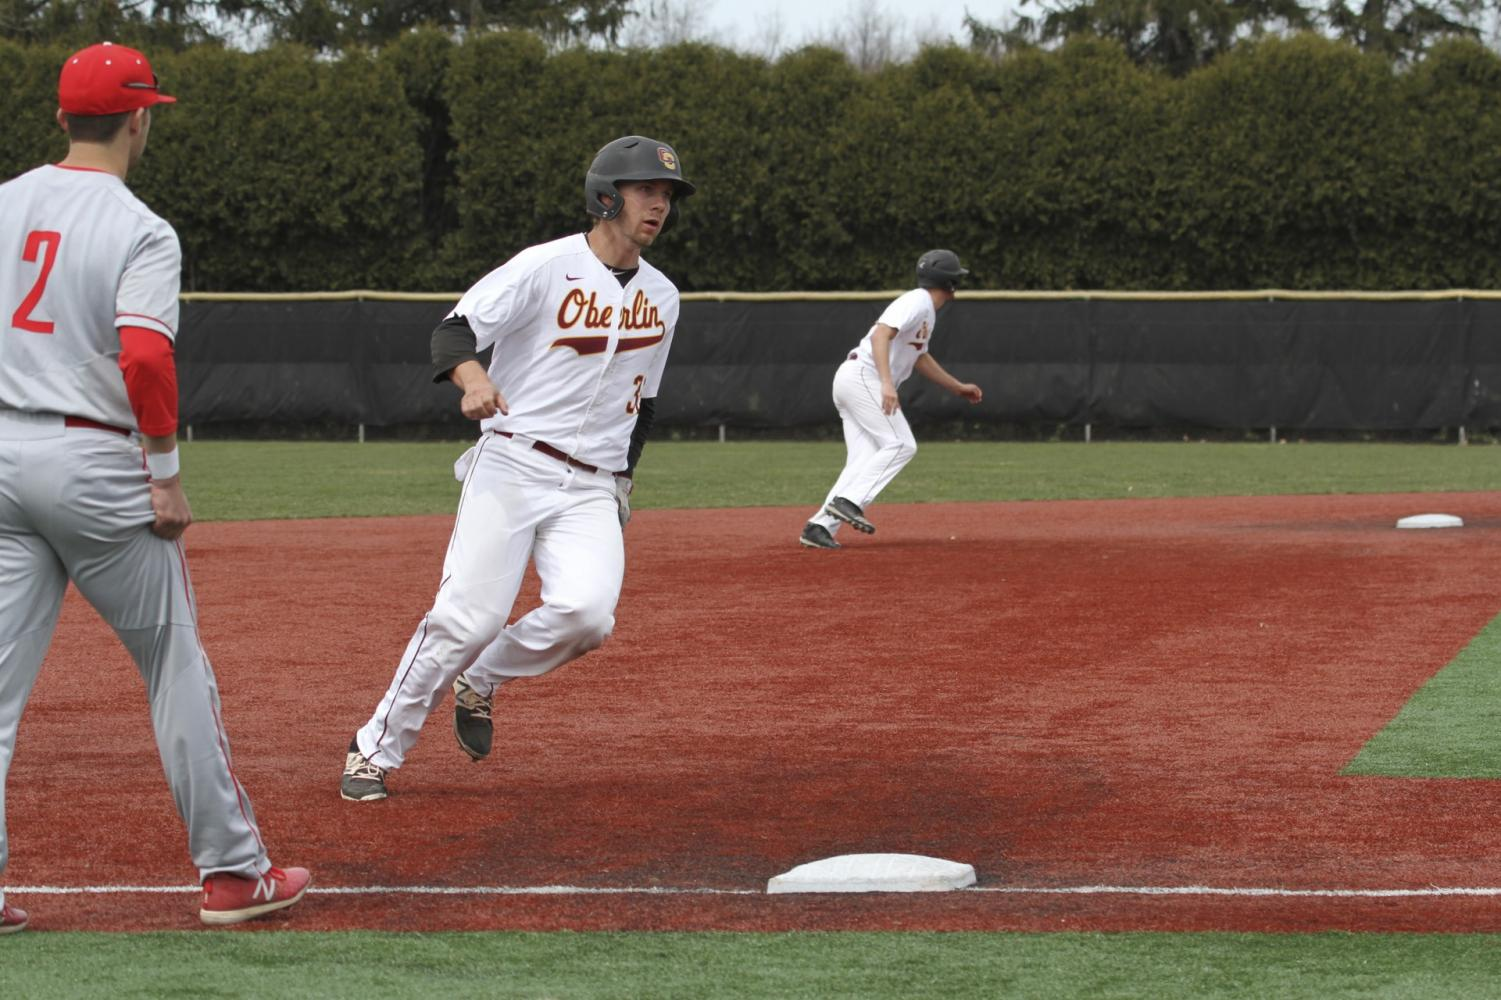 Junior third baseman Ian Dinsmore races around third base in an April 21 doubleheader against Wabash College. Although the team will not make its goal of earning a spot in the NCAC tournament, Dinsmore and his teammates look to end the season on a high note this weekend with doubleheaders against Hiram College and Cleary University.